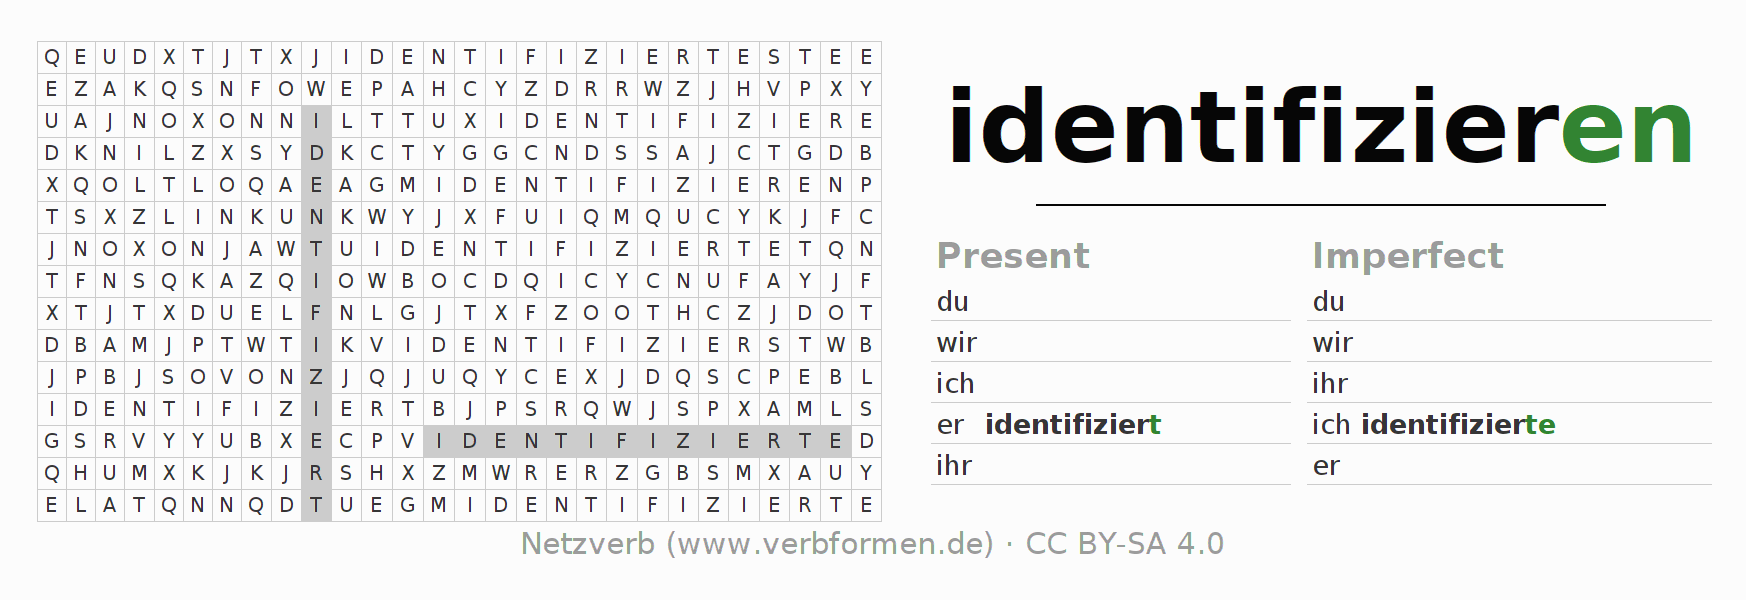 Word search puzzle for the conjugation of the verb identifizieren